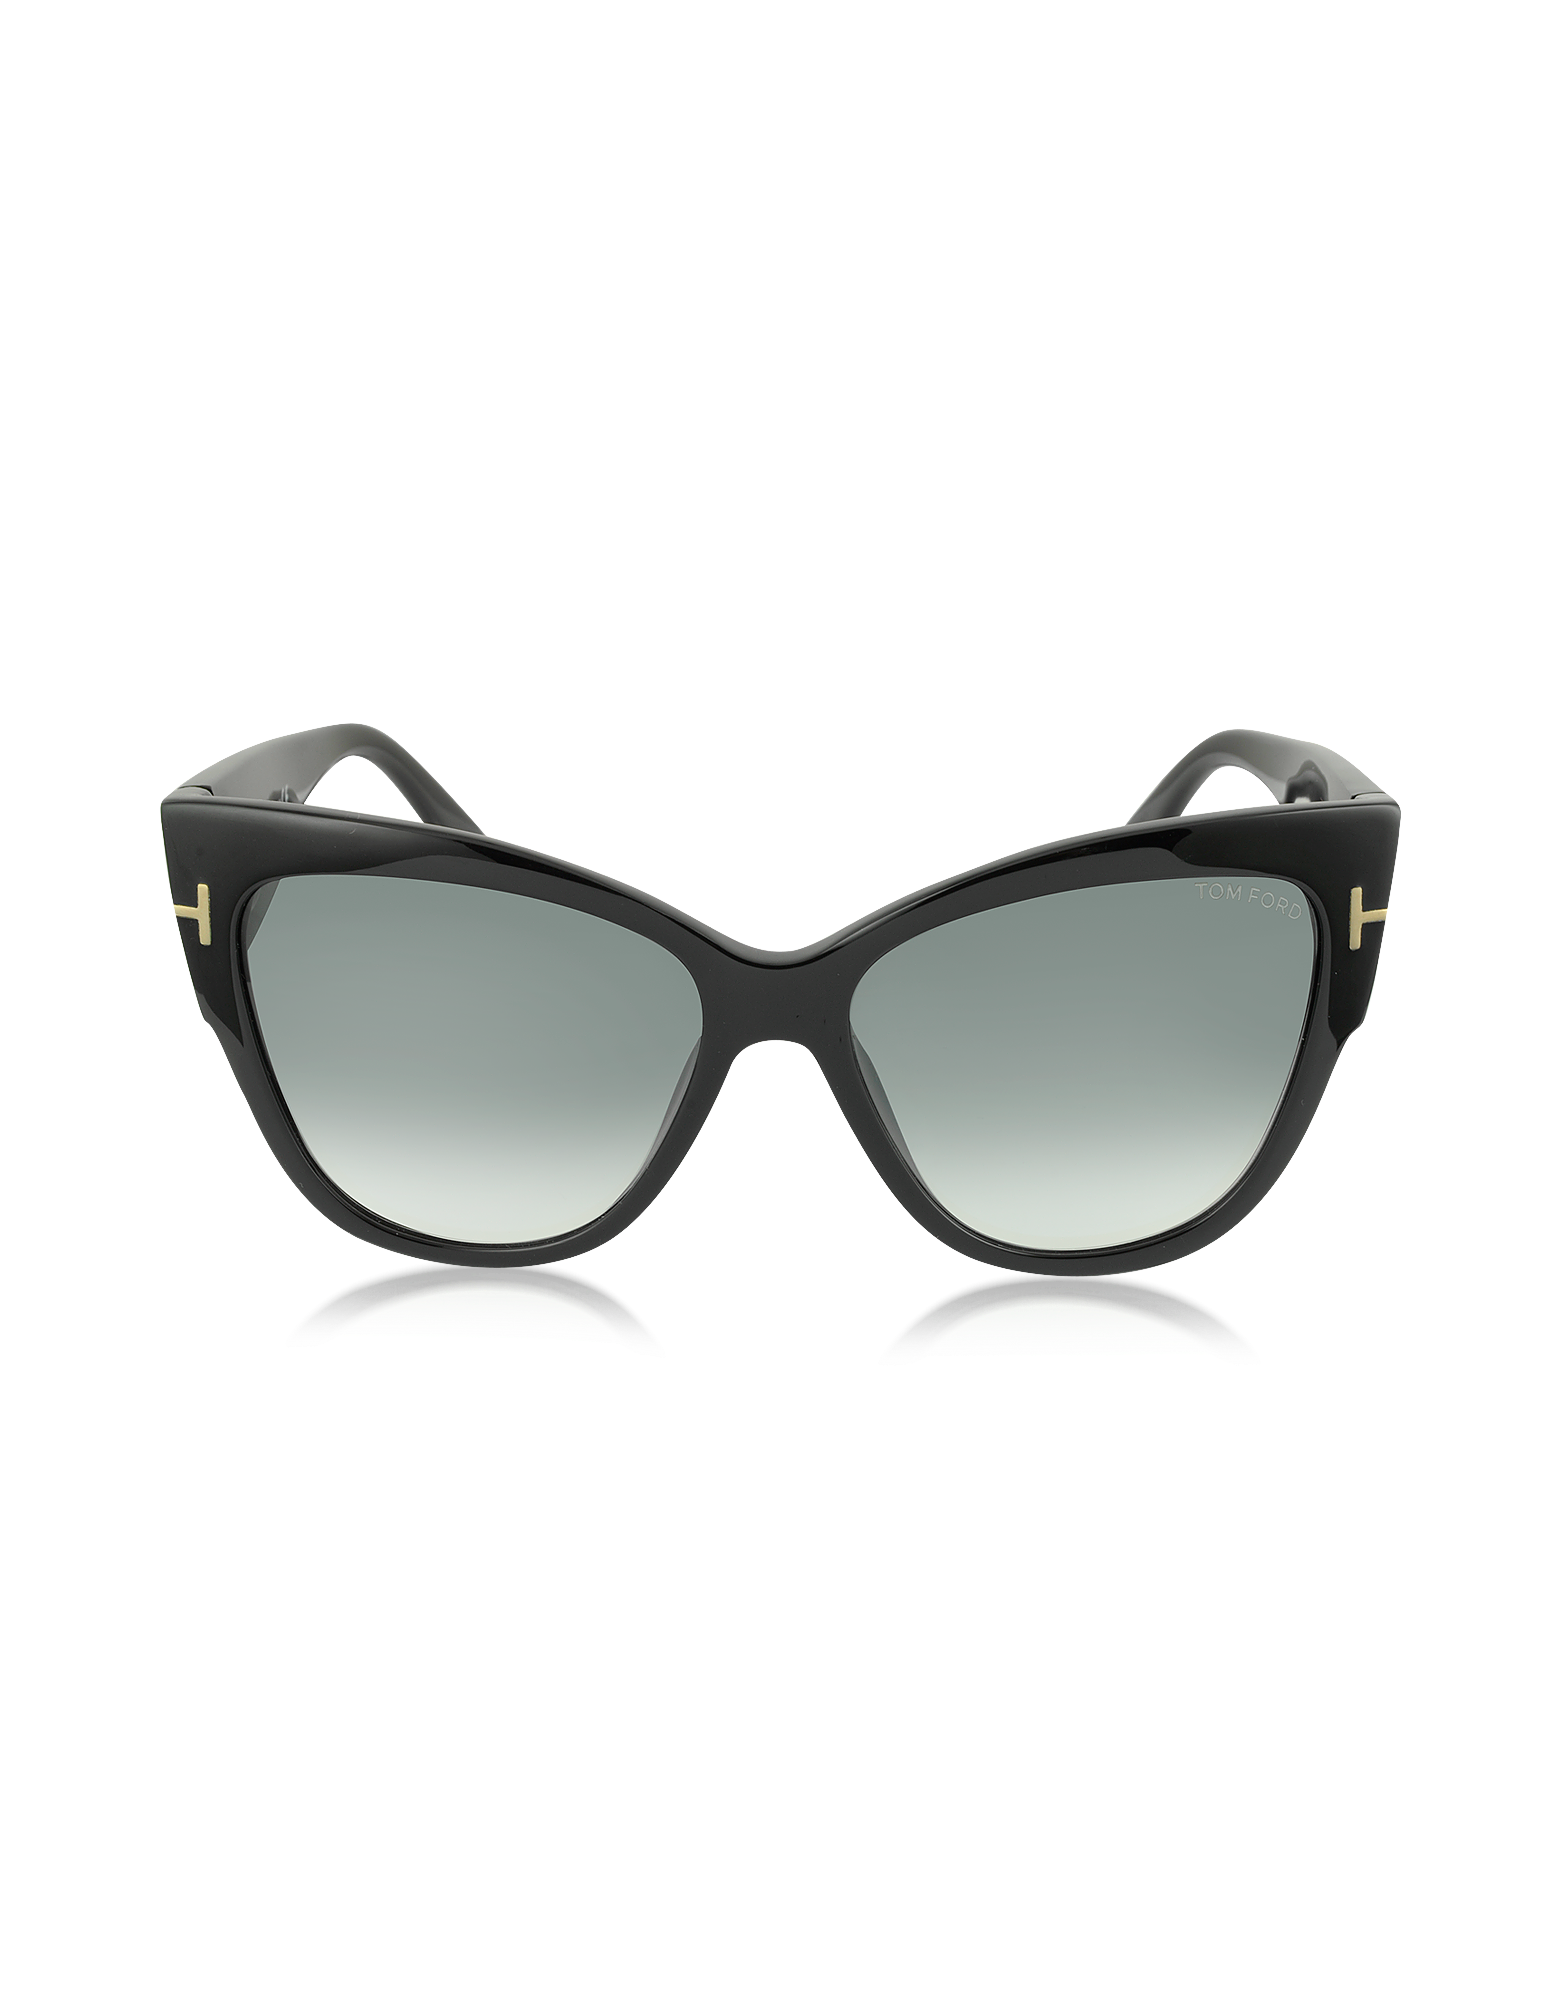 Image of ANOUSHKA FT0371 01B Black Cat Eye Sunglasses